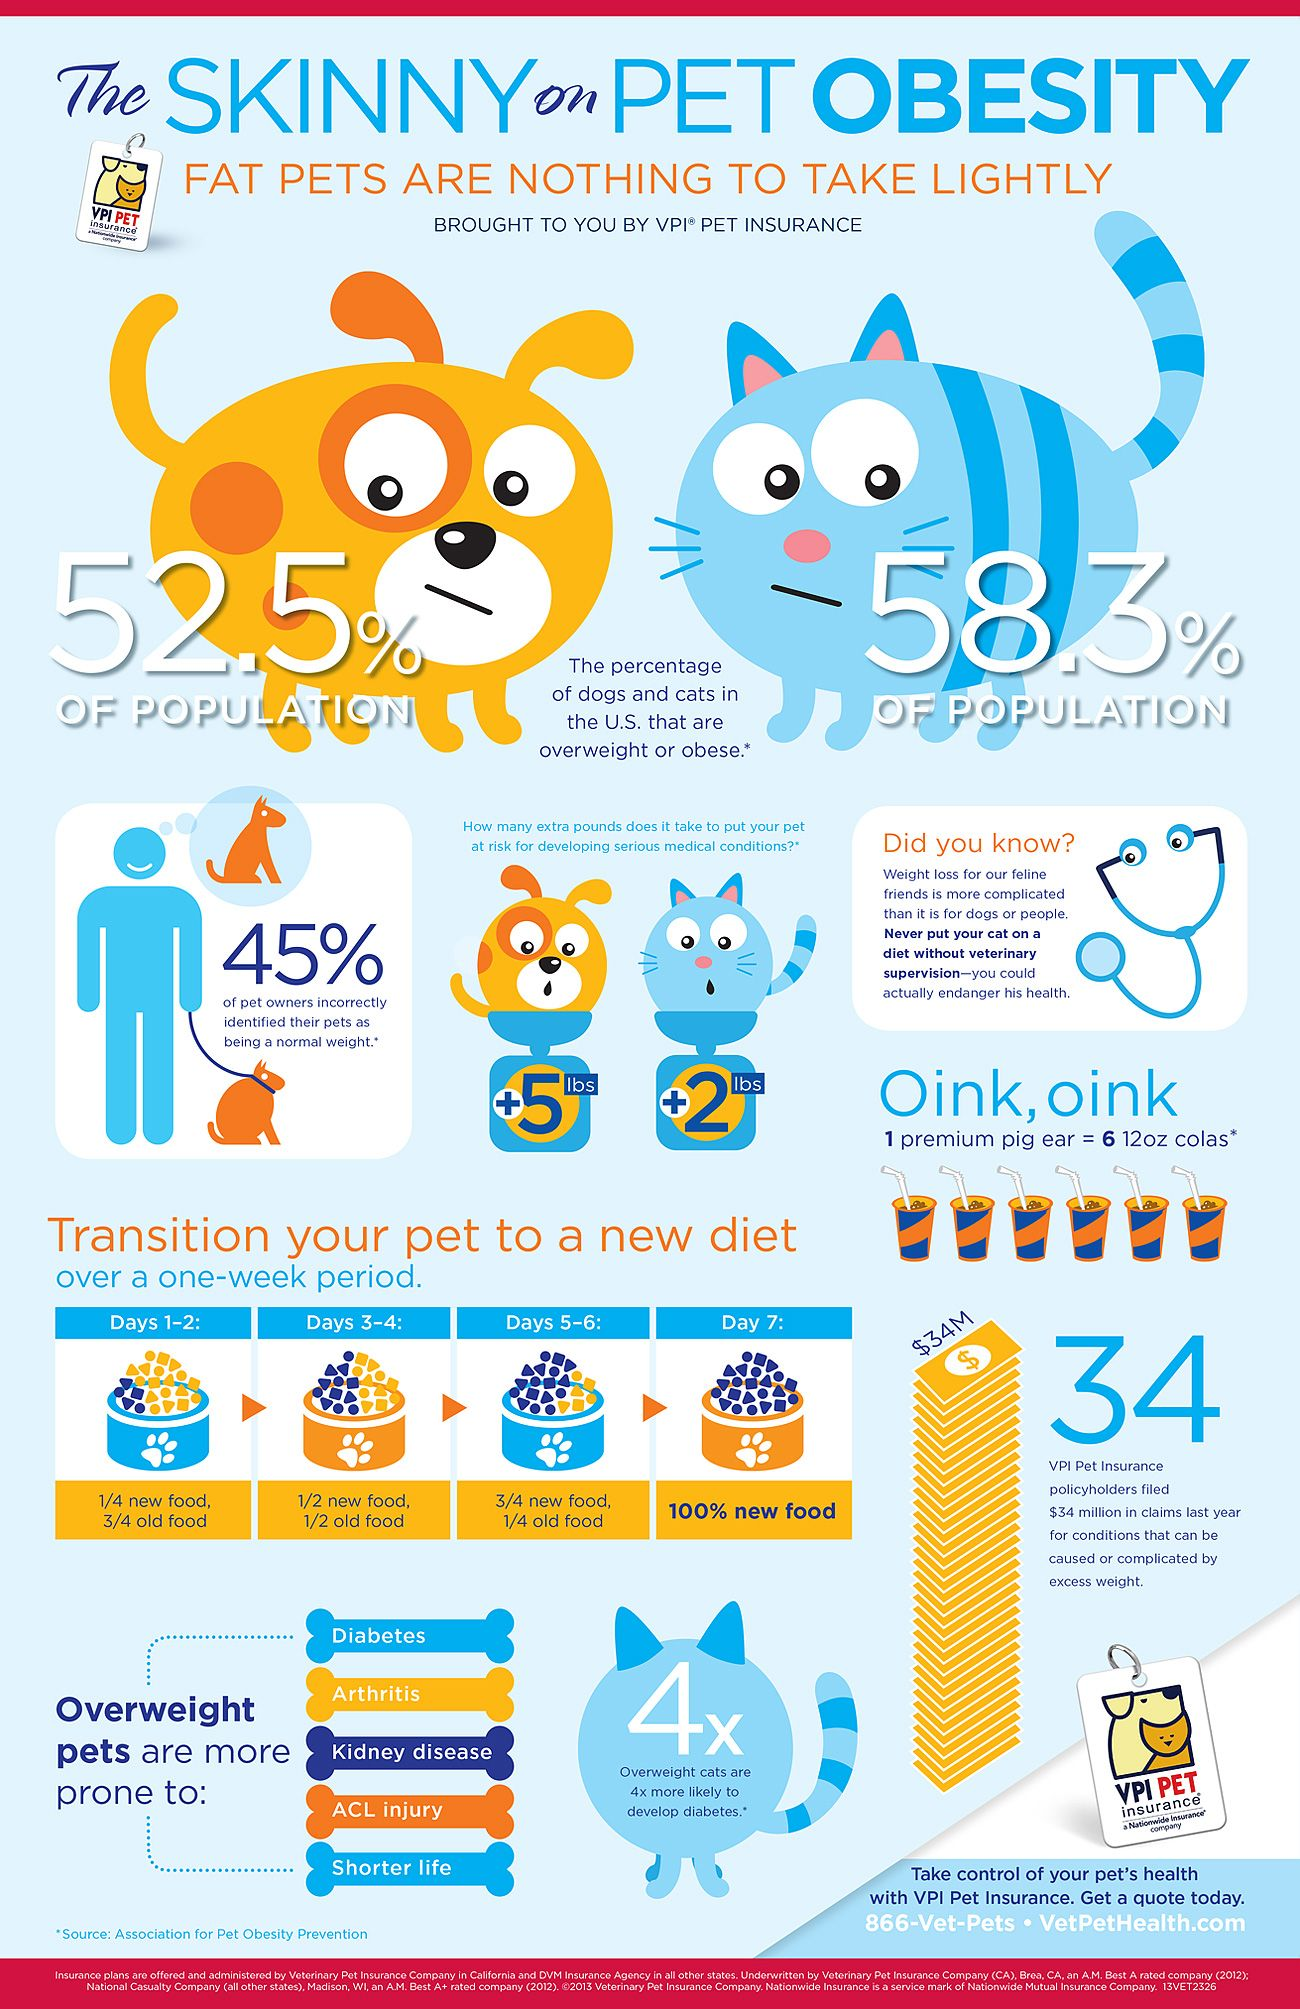 Veterinary Pet Insurance Pet Health Insurance Plans For Your Dog